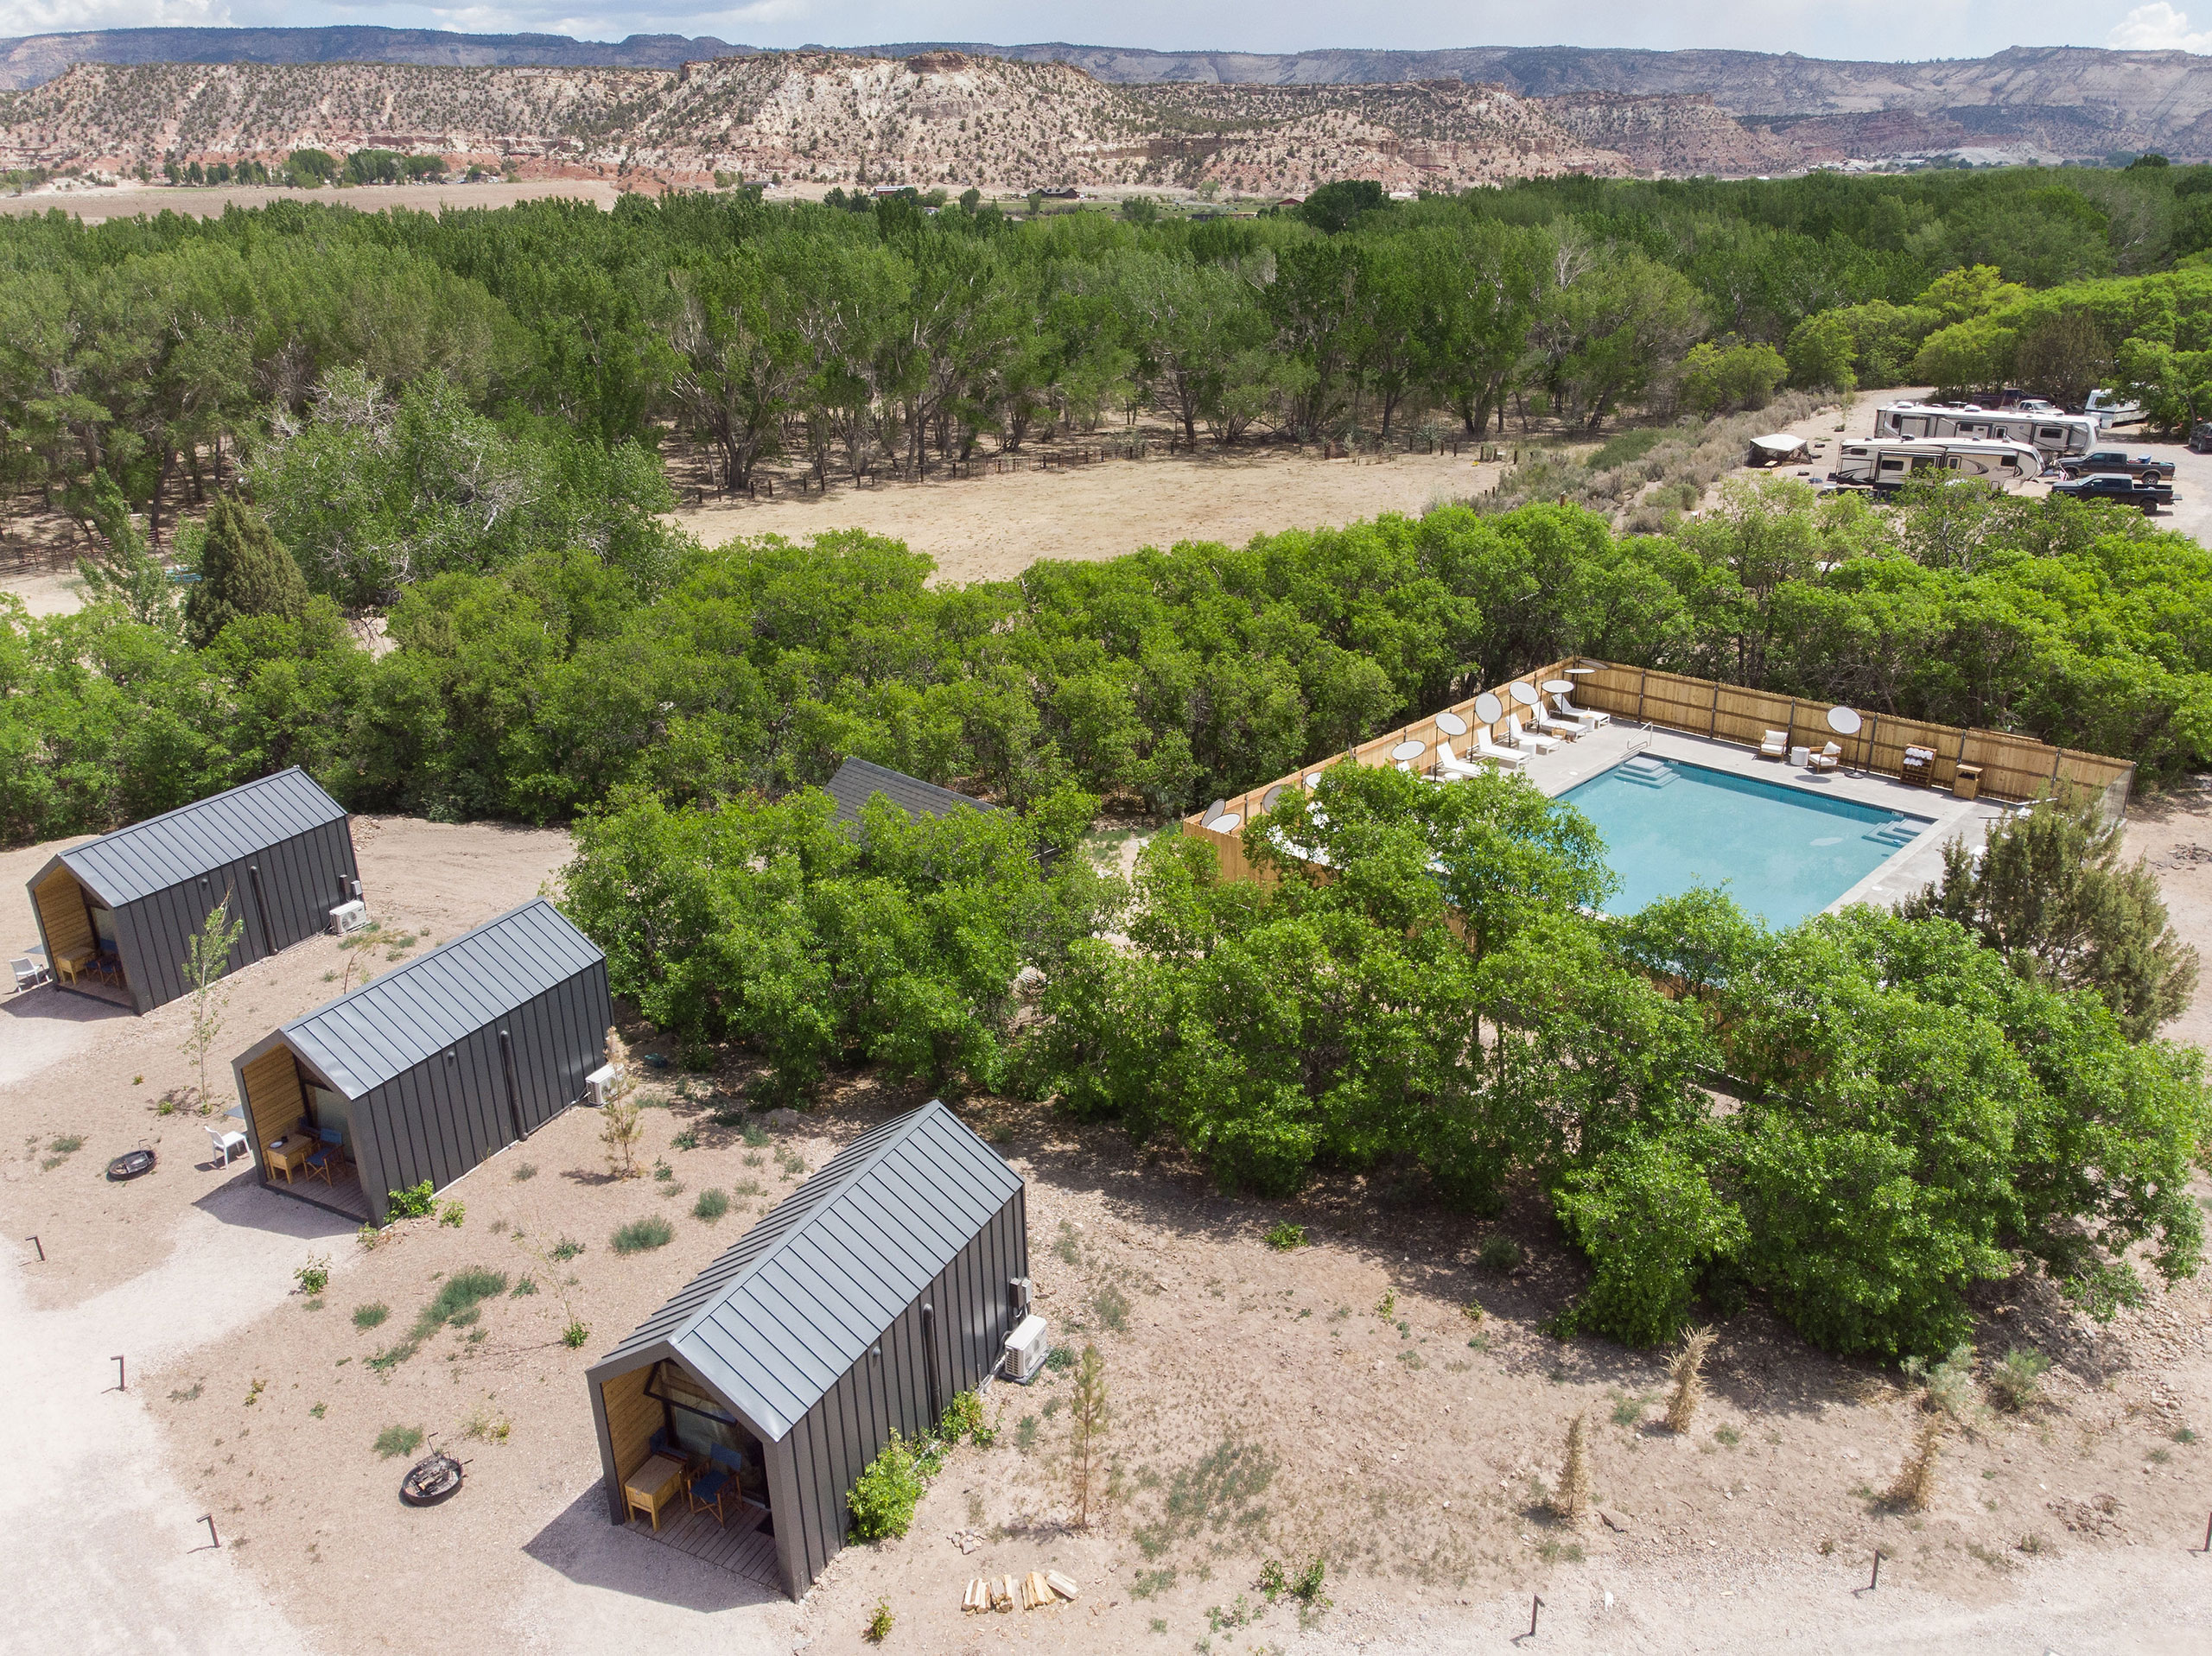 Pool and Cabins.Photography by Kim and Nash Finley.